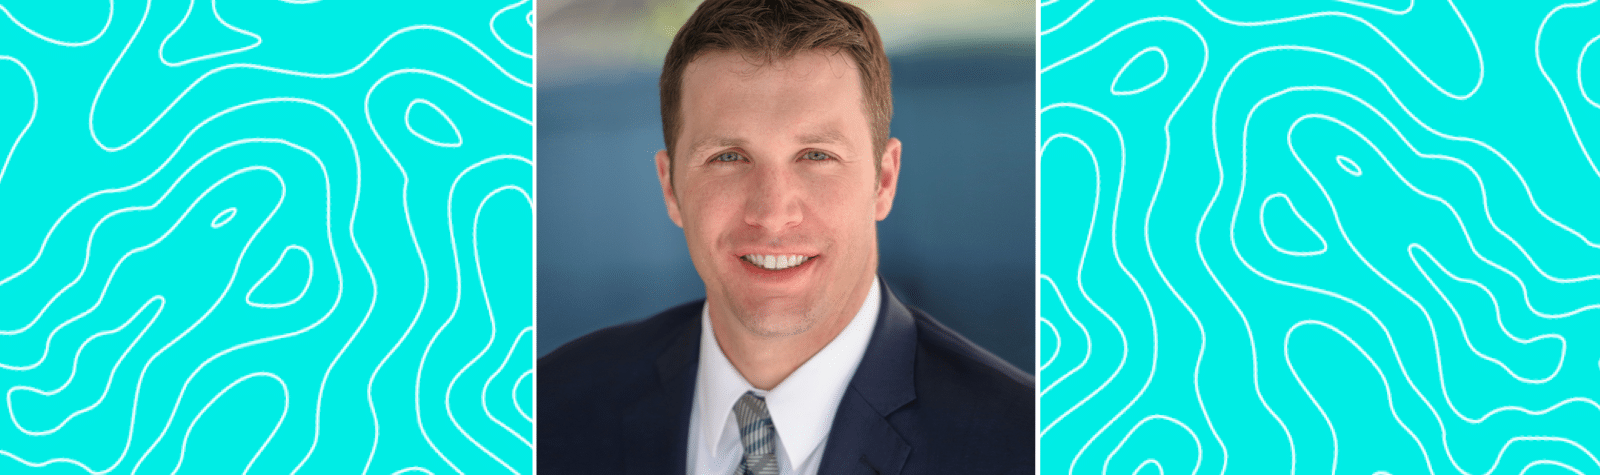 045: What Franchising Can Teach You About Scaling